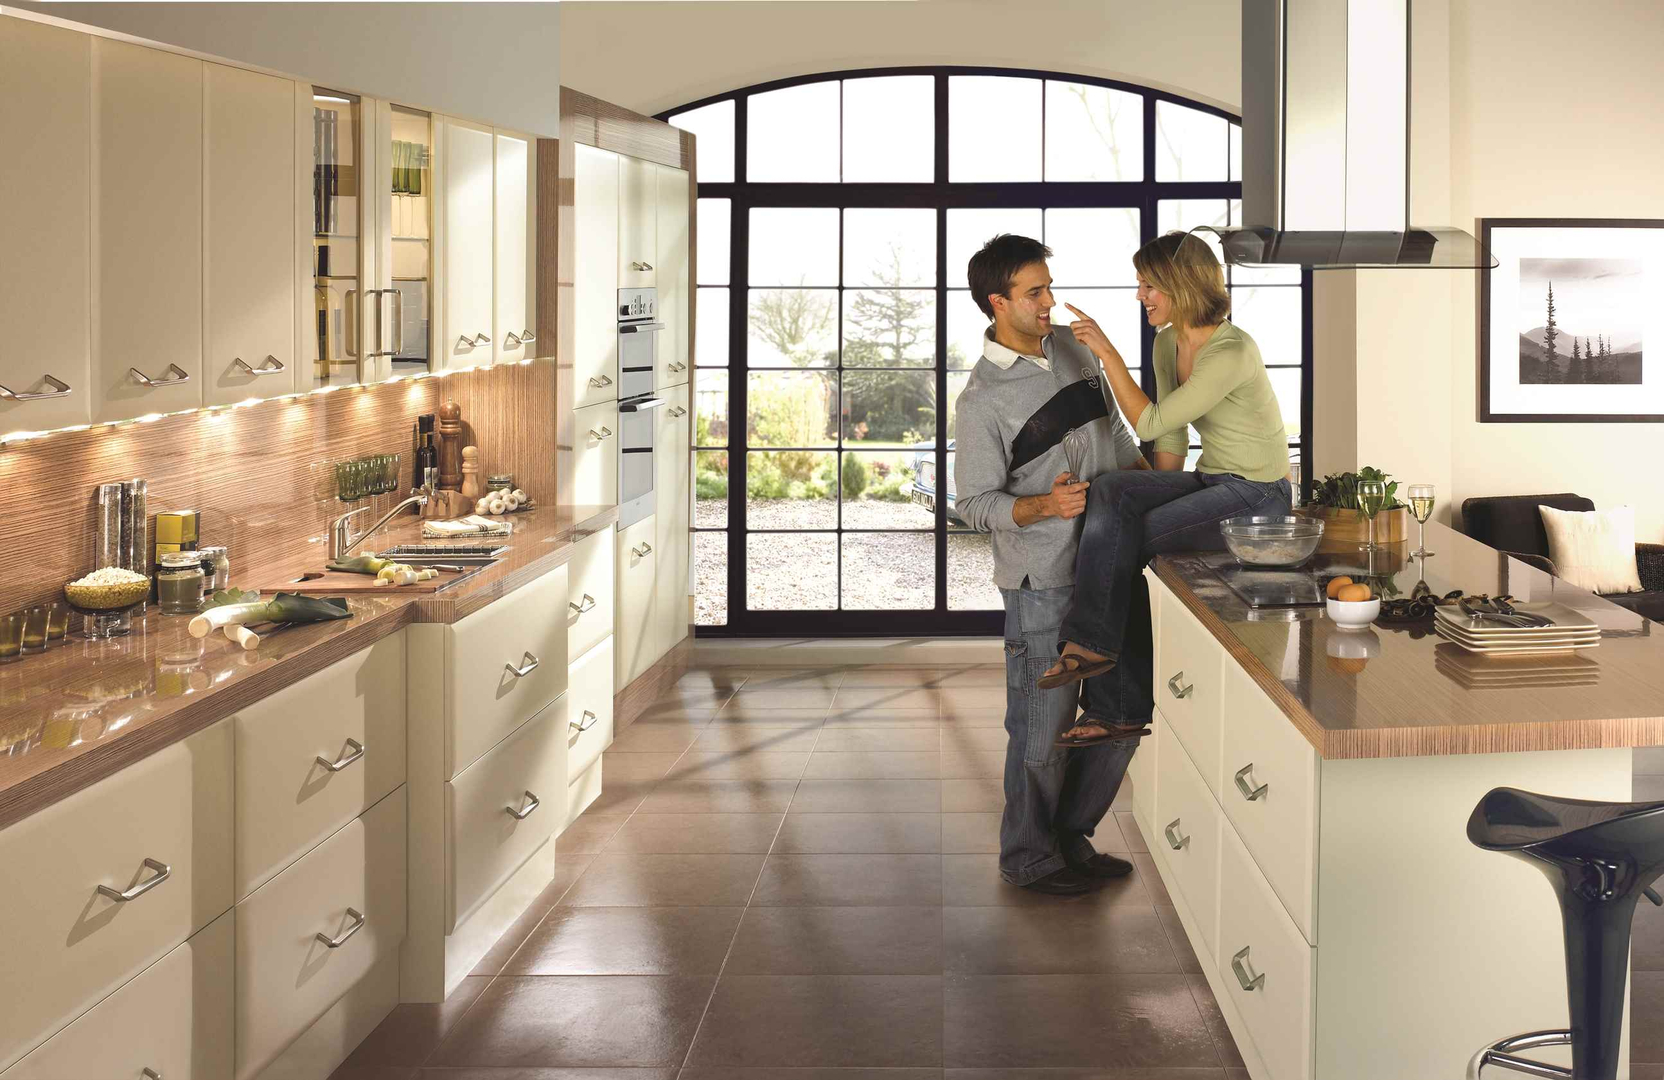 The Kitchen Furniture Company Cheap Kitchens Supplies Kitchen Pack Company Romford Essex